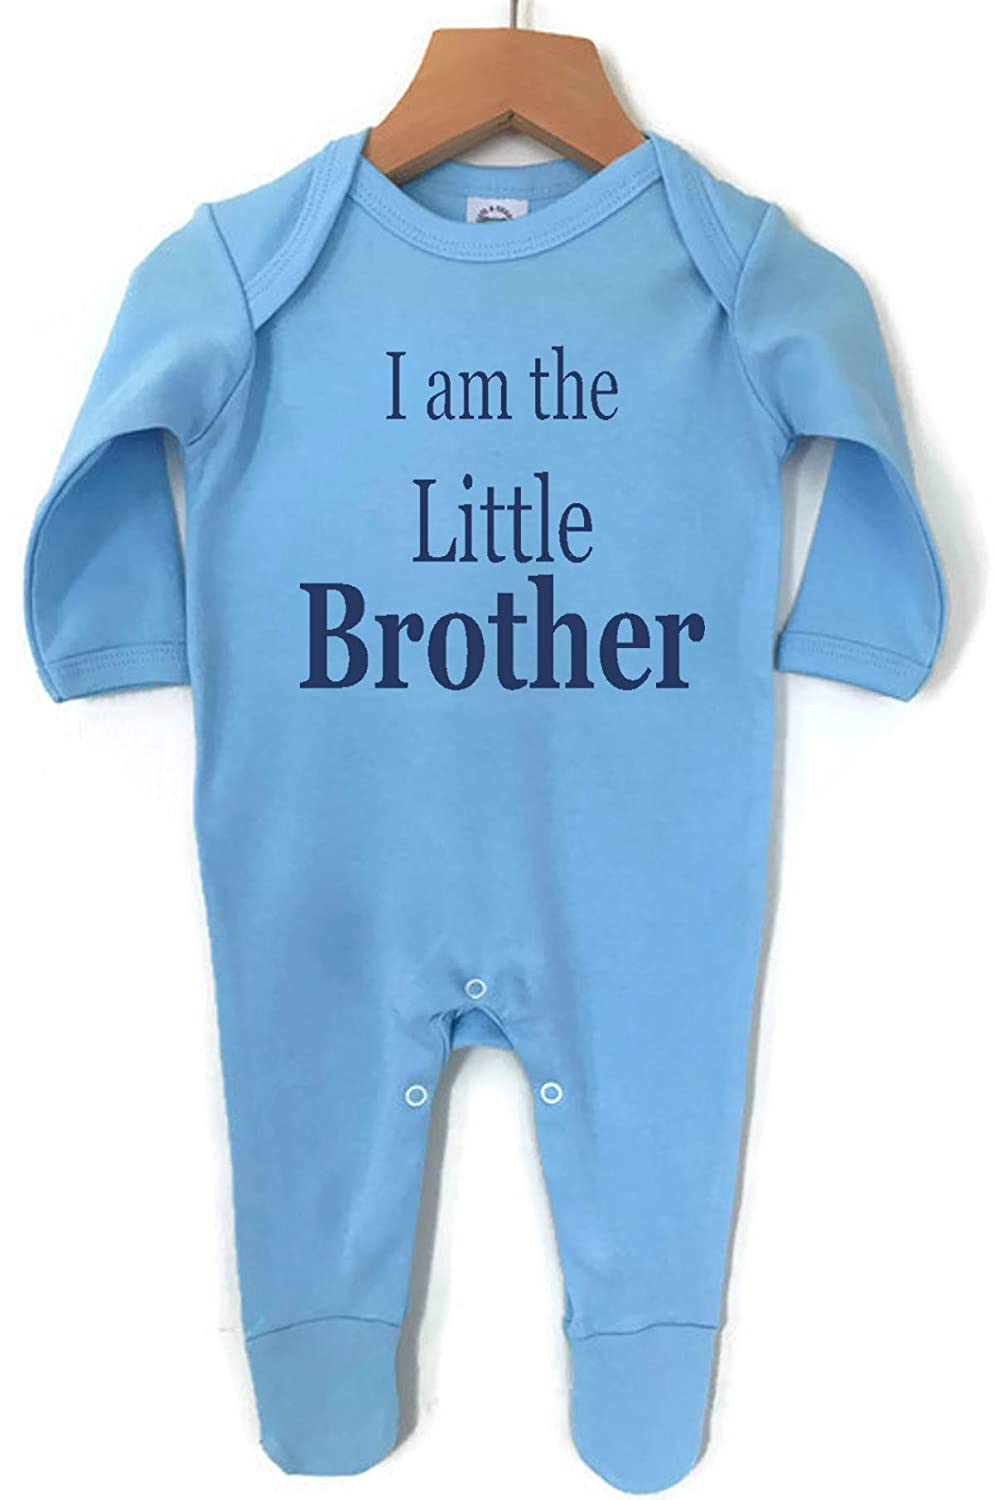 I Am The Little Brother Baby Boy Girl Made in England 100/% cotton Vests Babygrow Sleepsuit